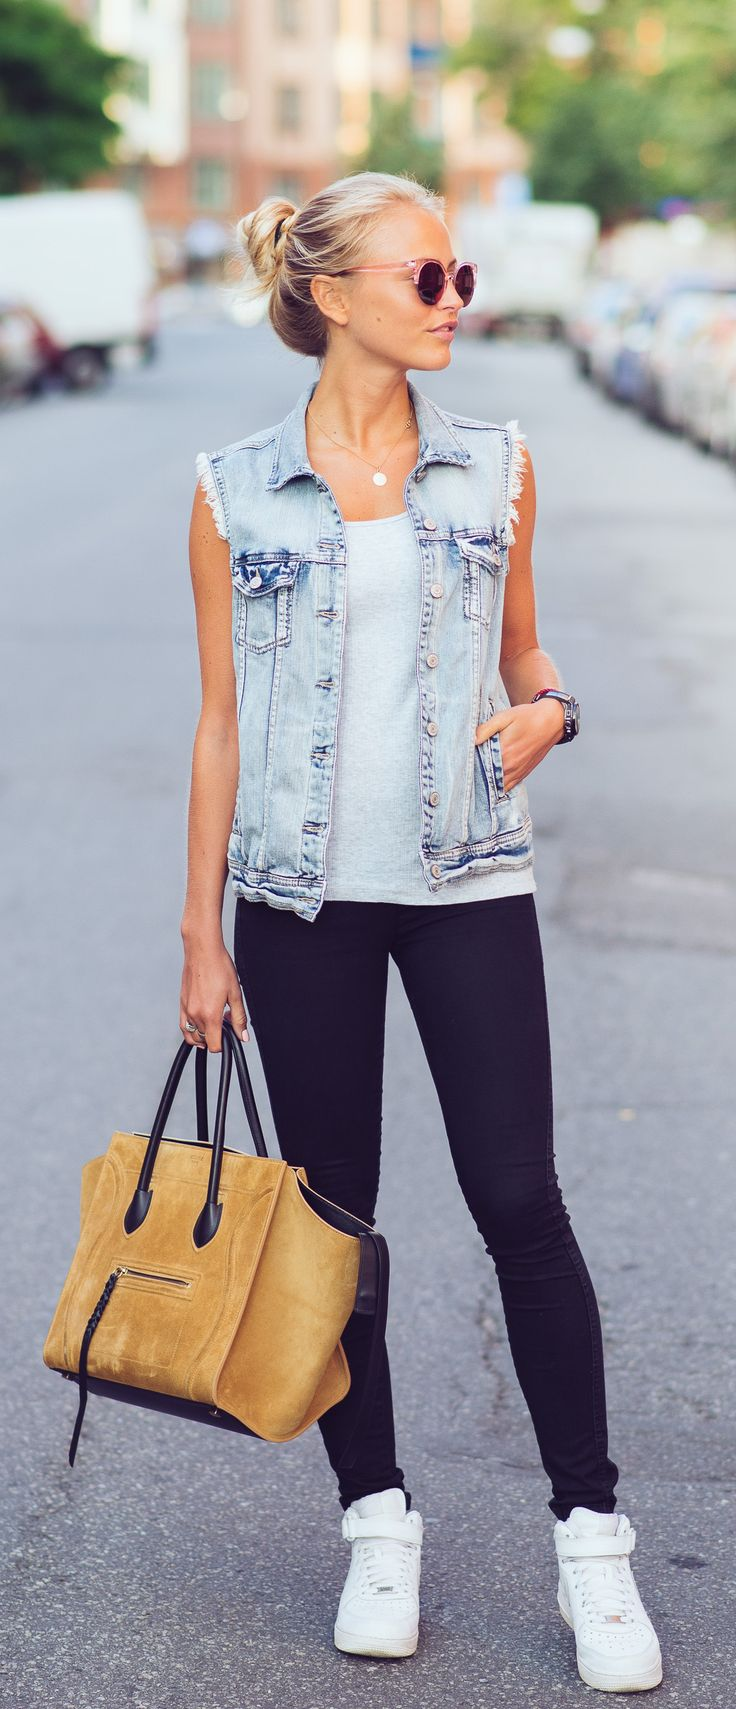 »Janni Deler is wearing a denim vest from Lindex, jeans from Gina Tricot, bag from Céline and shoes from Nike«